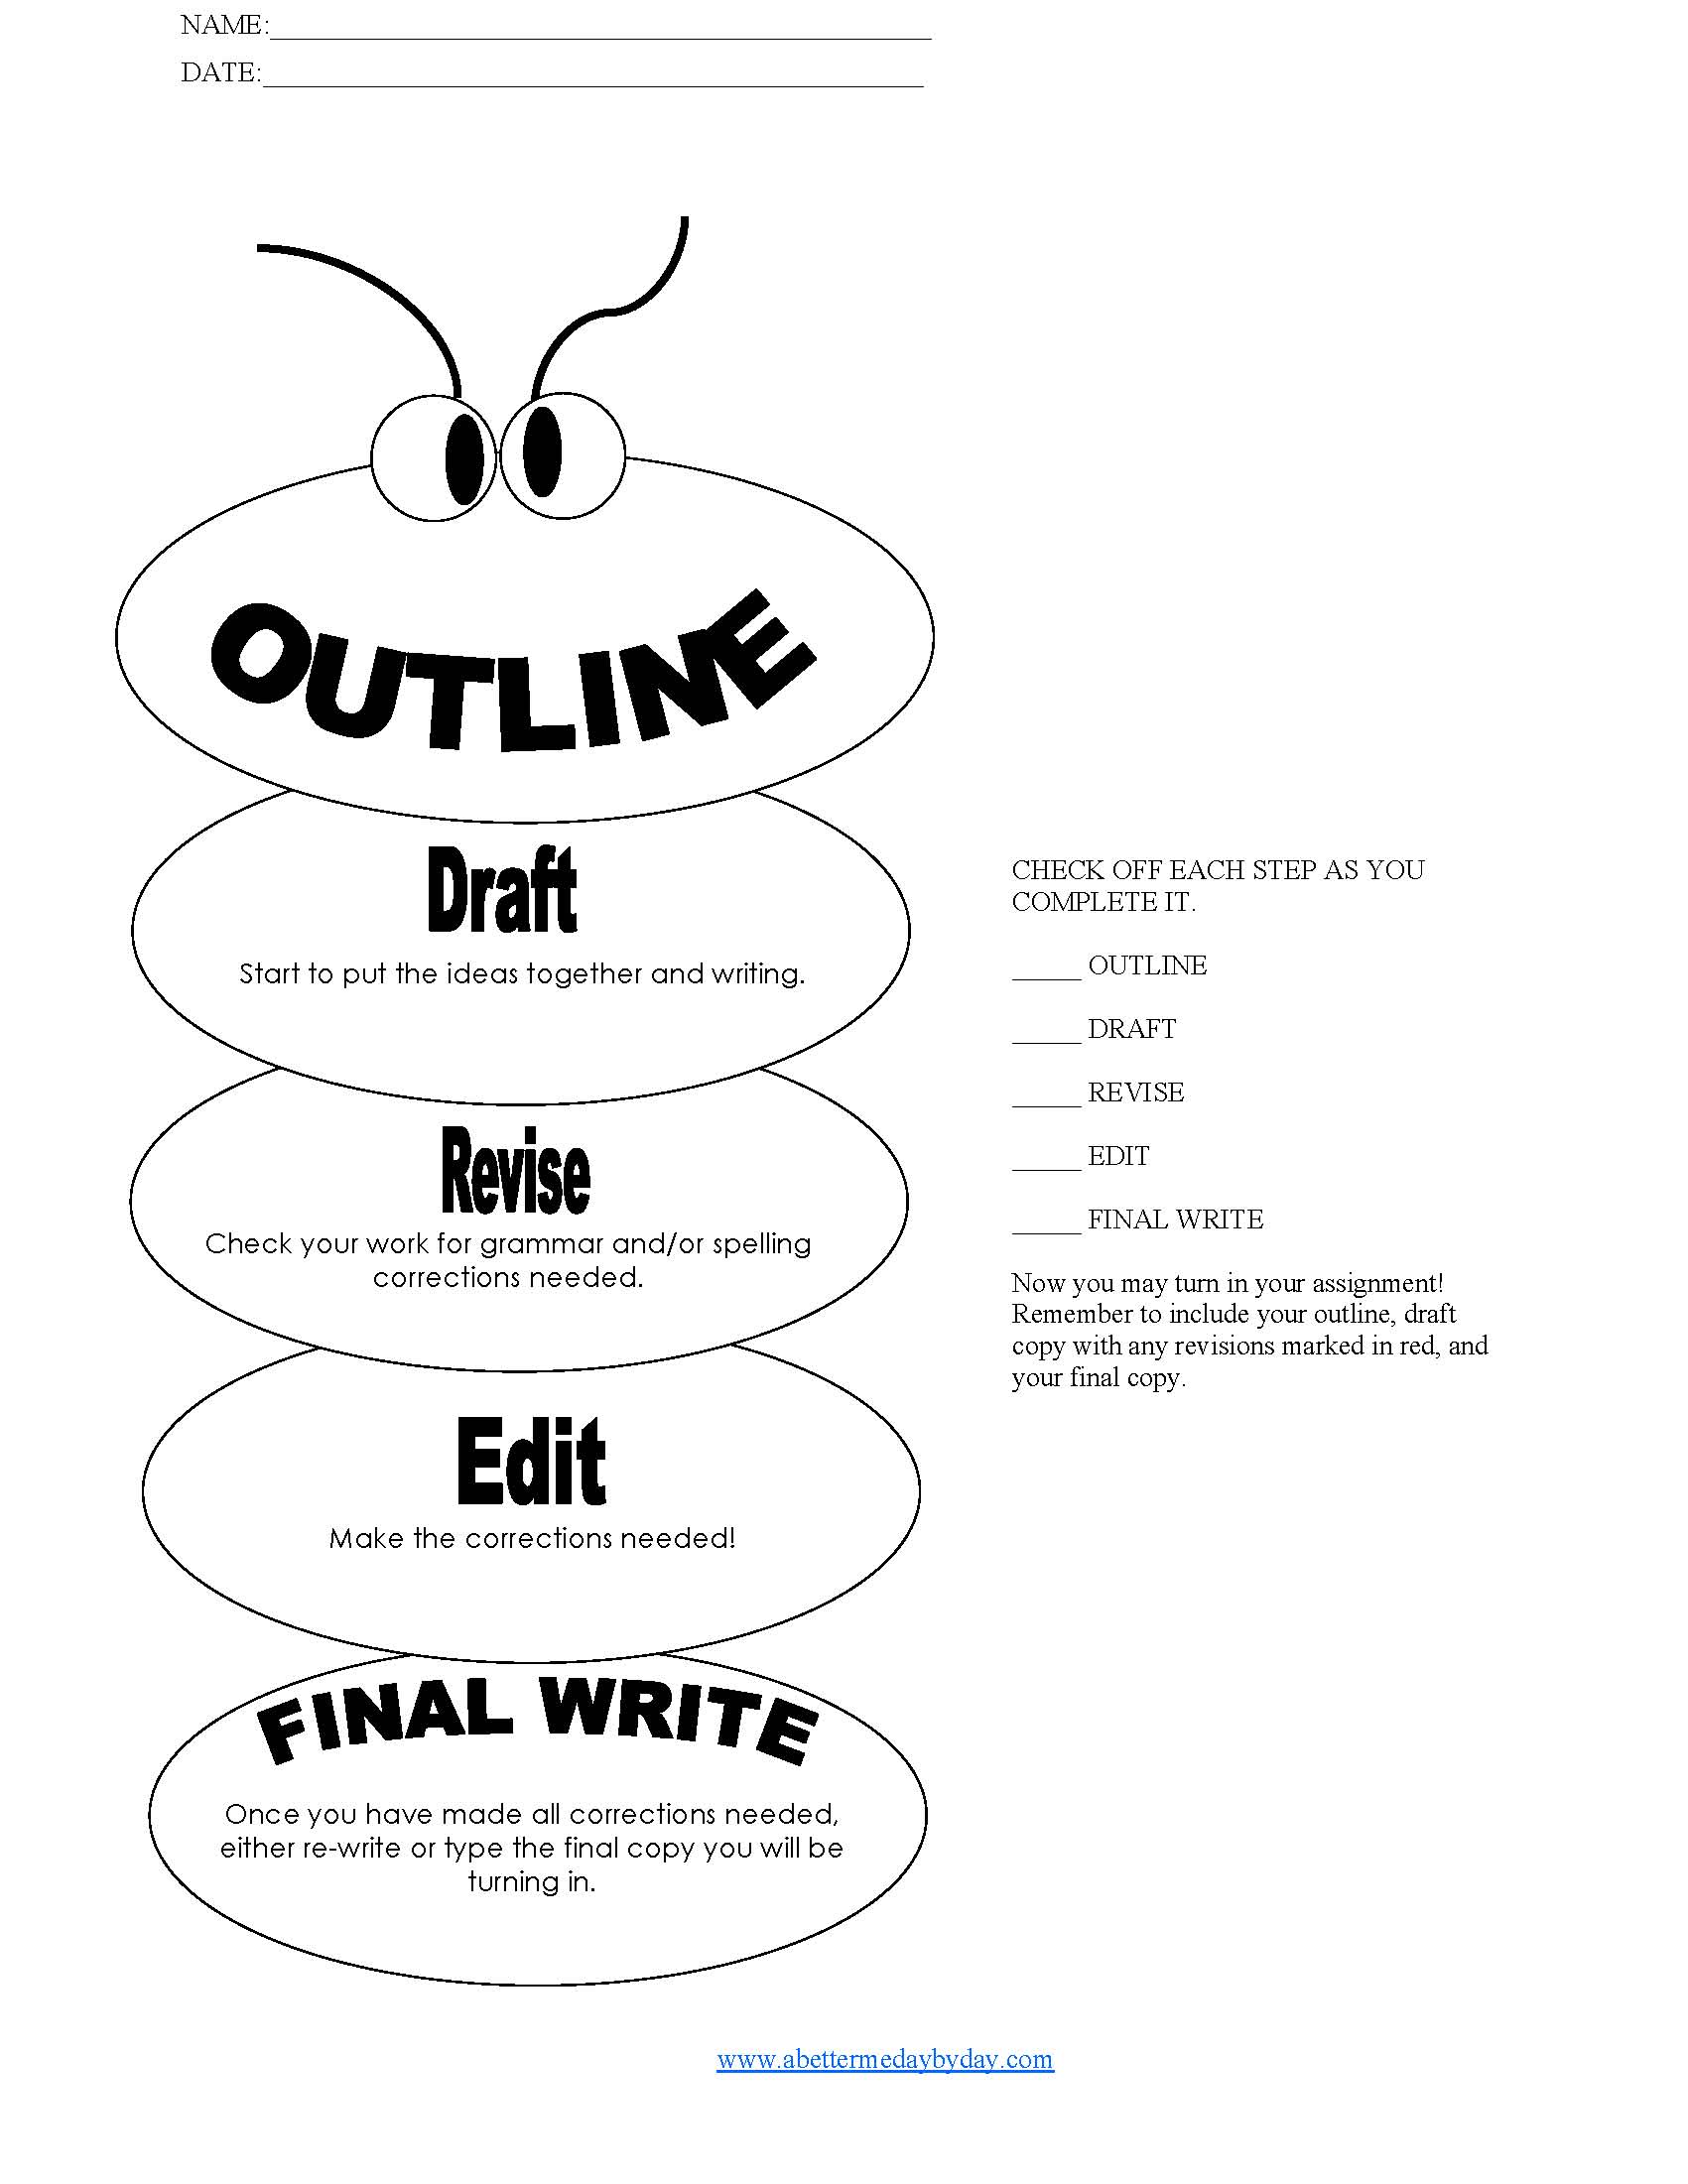 how to write outline for essay examples Select the sample outlines pdf in the media box above to download the sample of this outline the sample pdf in the media box above is an example of an outline that a student might create before writing an essay in order to organize her thoughts and make sure that she has not forgotten any key points that she wants.